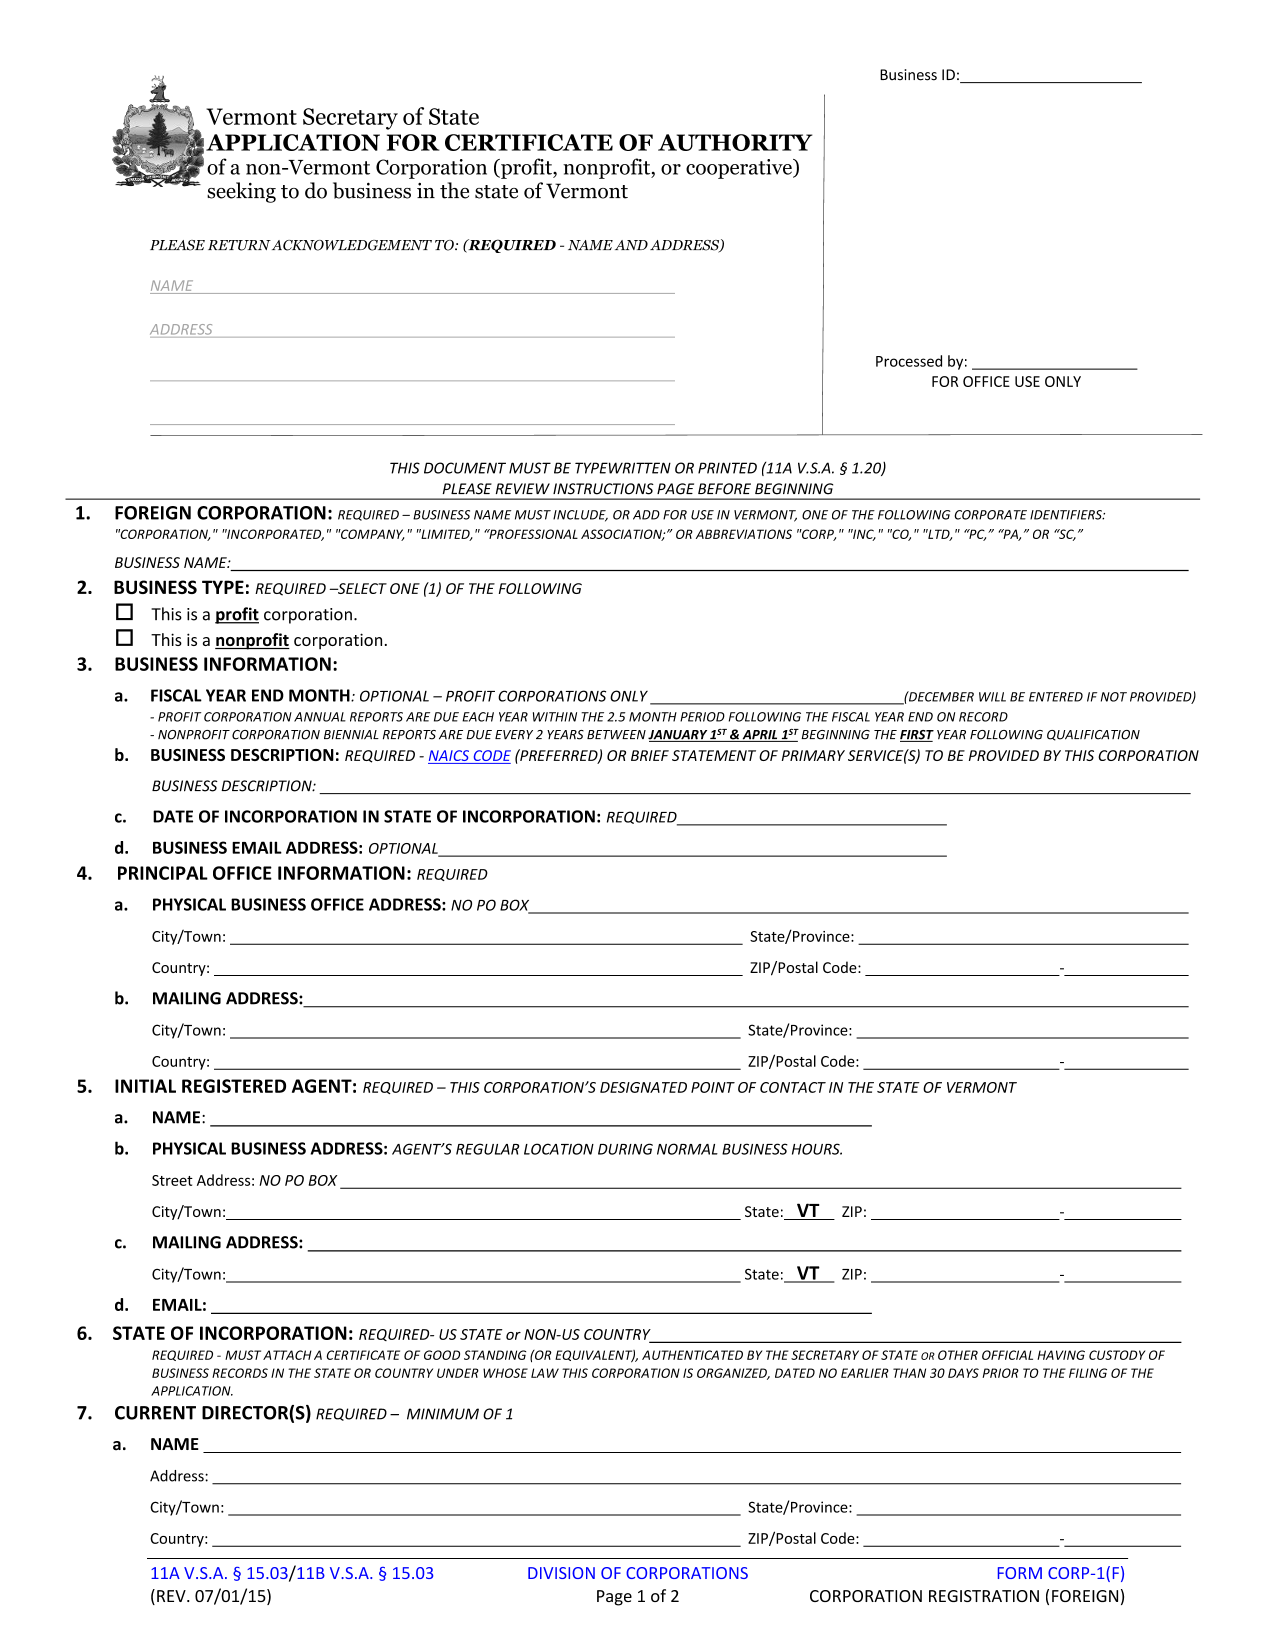 vermont-foreign-corporation-application-for-certificate-of-authority